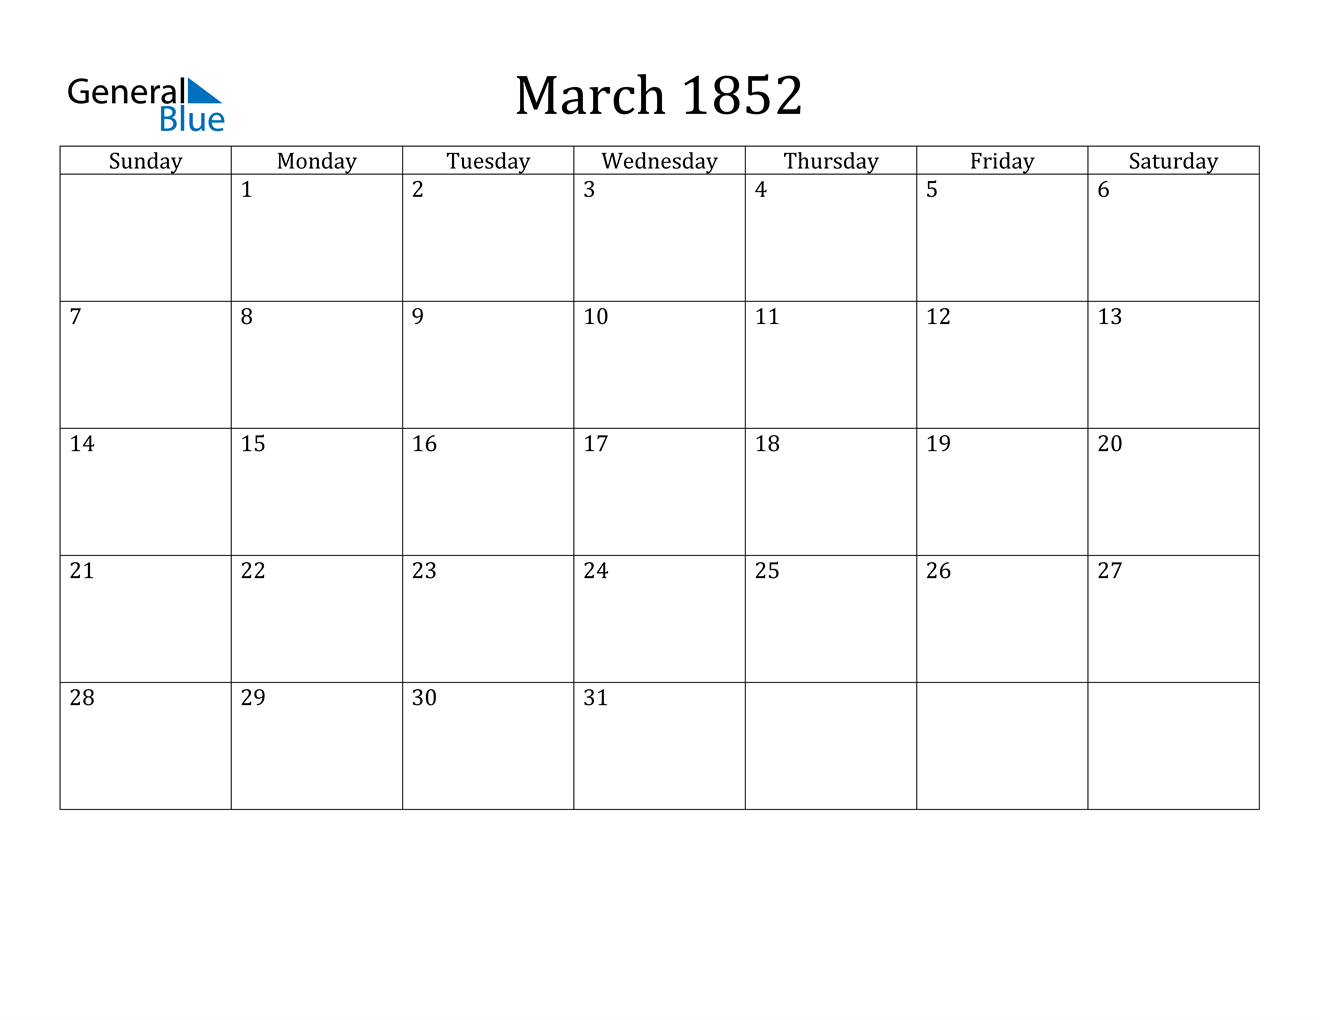 Image of March 1852 Calendar